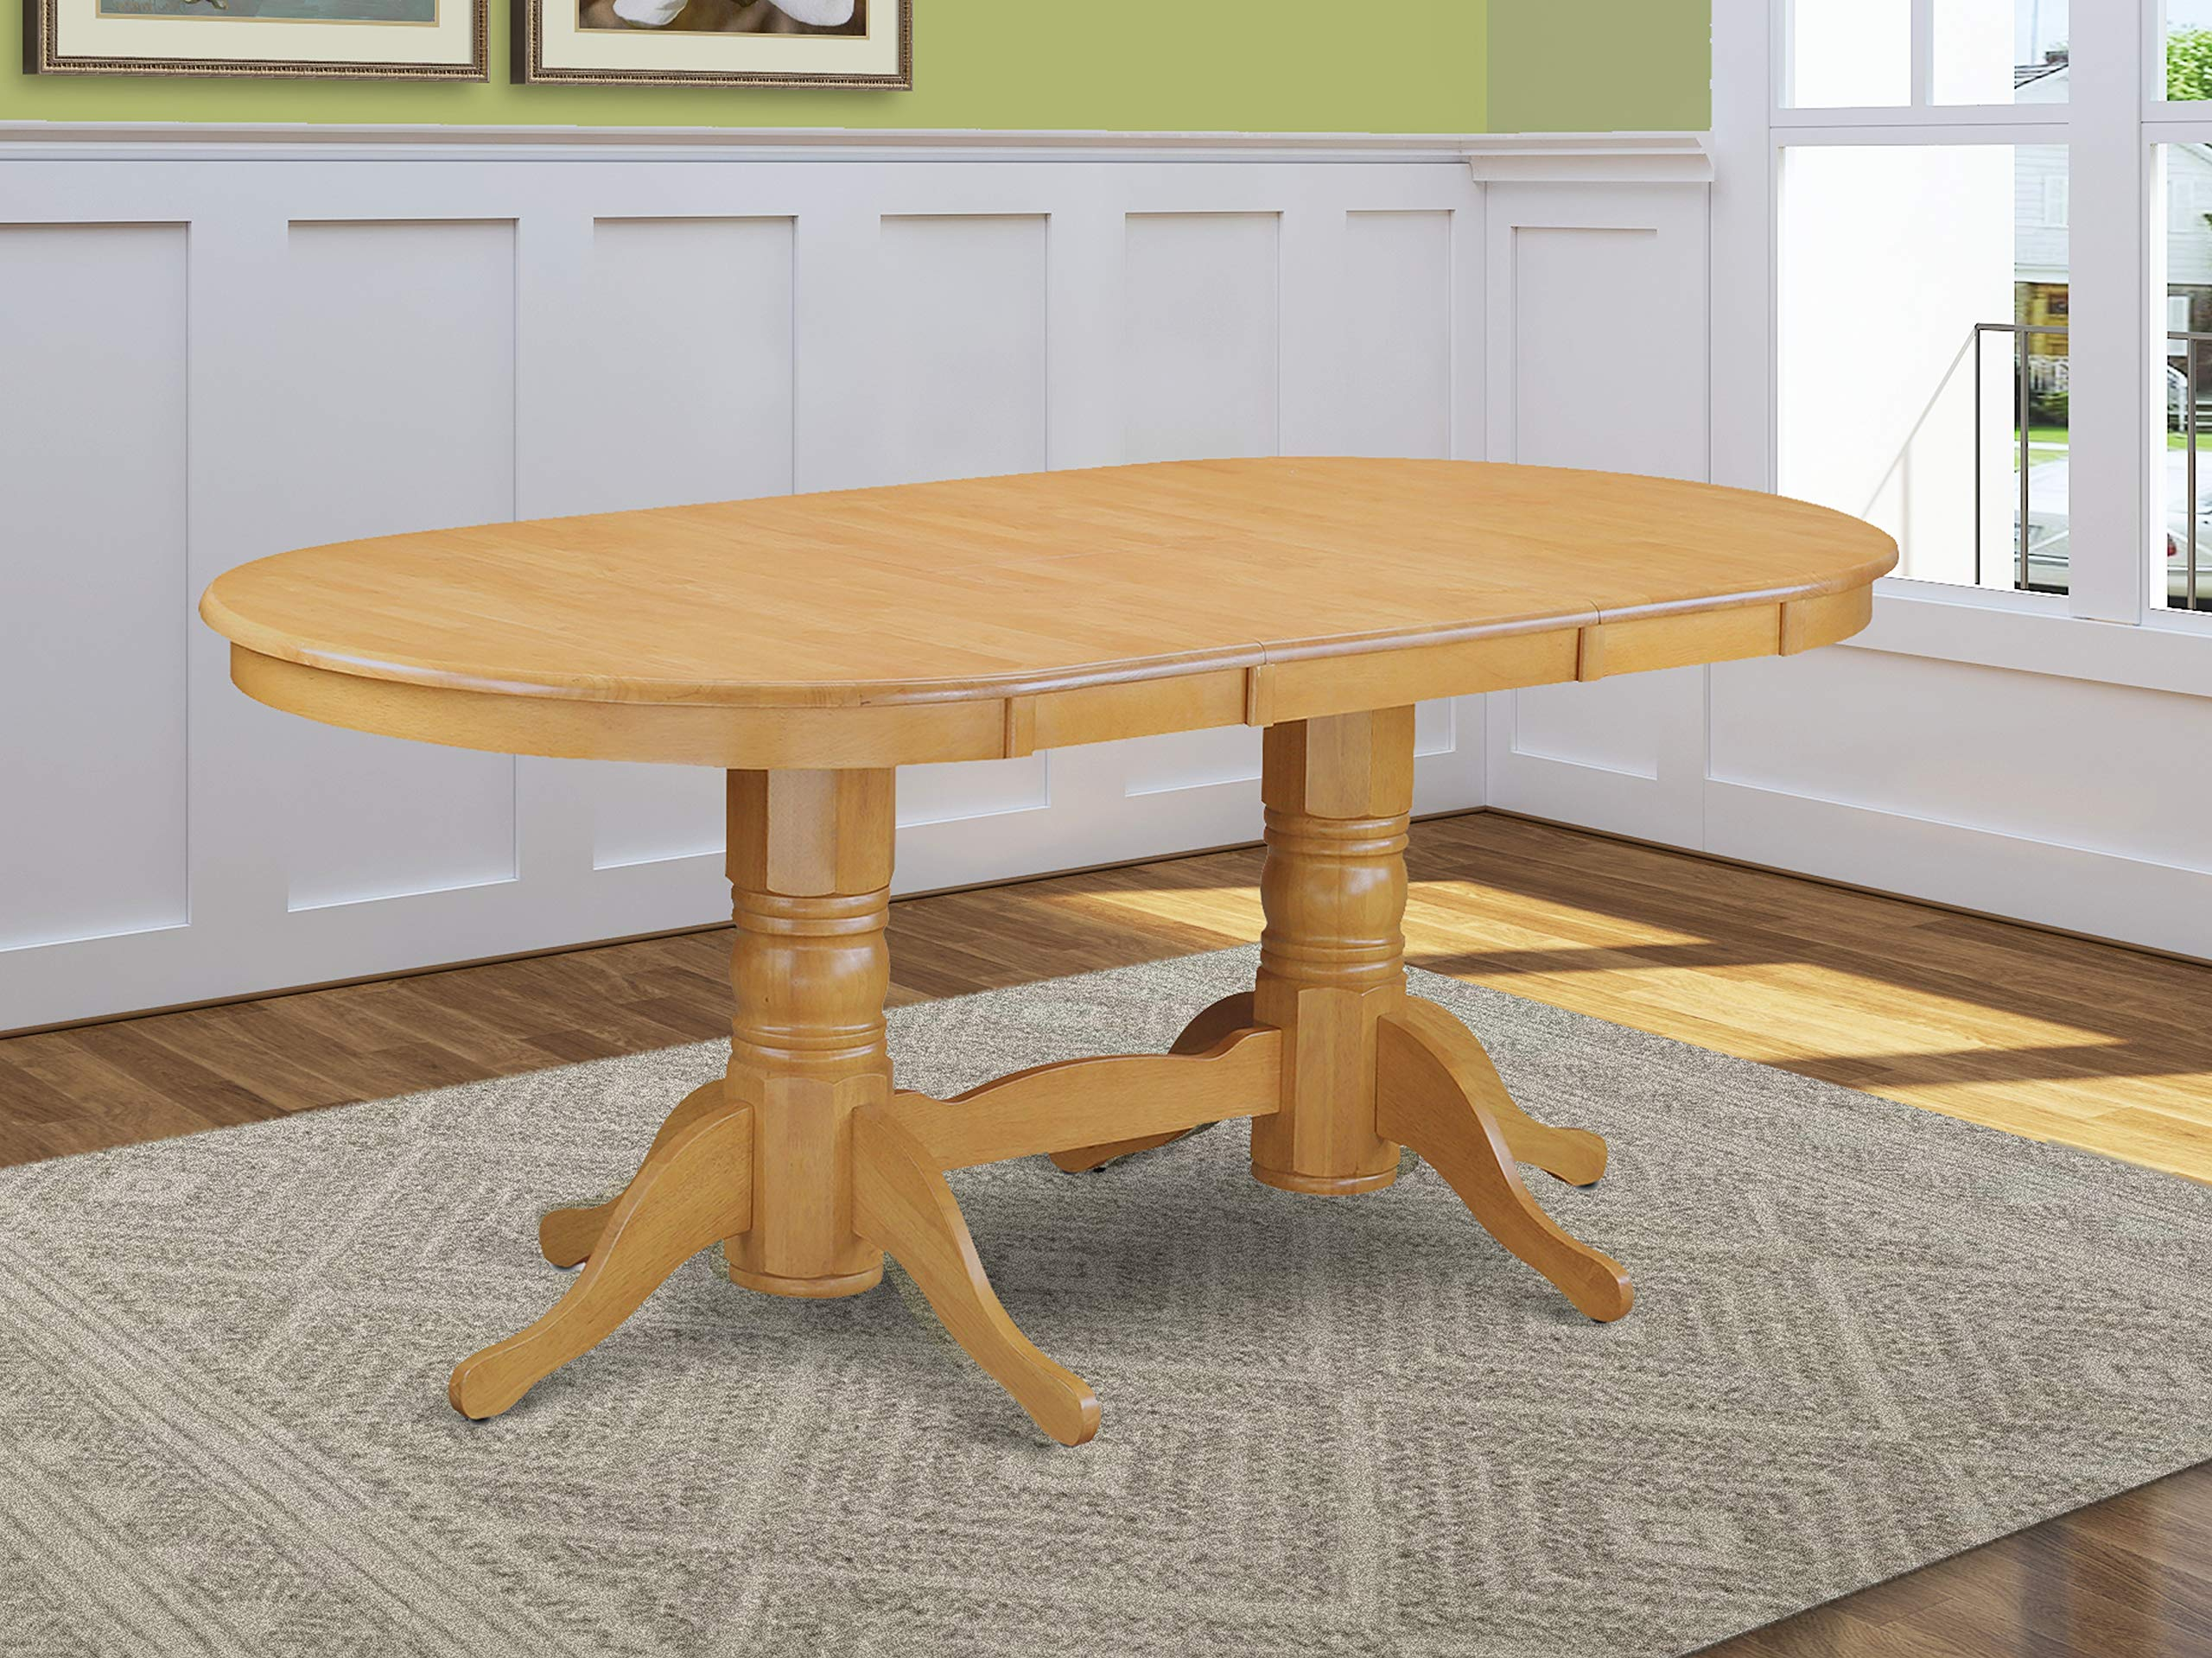 East West Furniture Butterfly Leaf Oval Wood Dining Table   Oak Table Top  and Oak Finish Double Pedestal Legs Solid Wood Frame Dinner Table